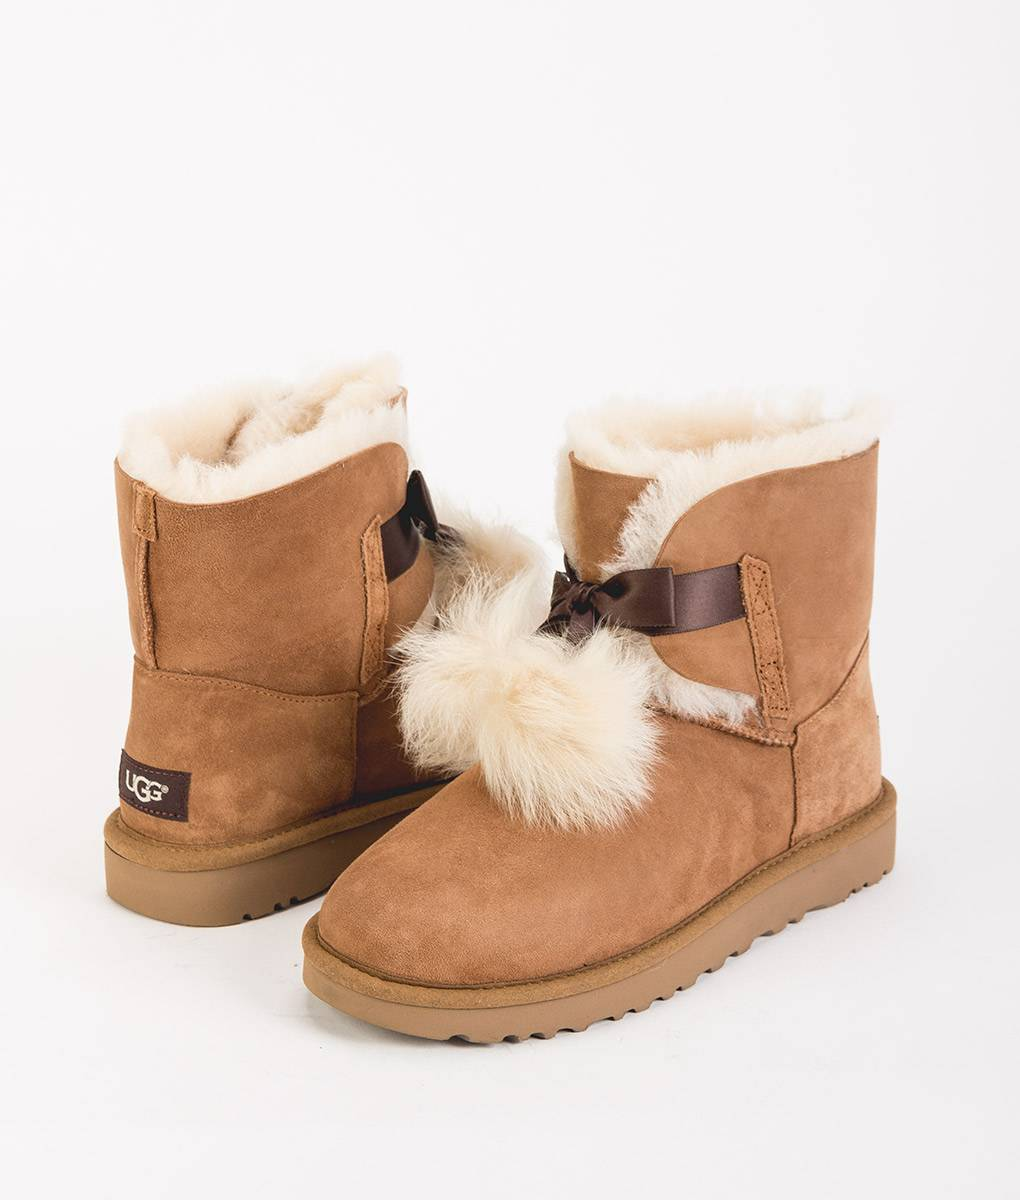 4e3bed86c37 Best Winter Shoes And Boots For 2018 - That Girl At The Party